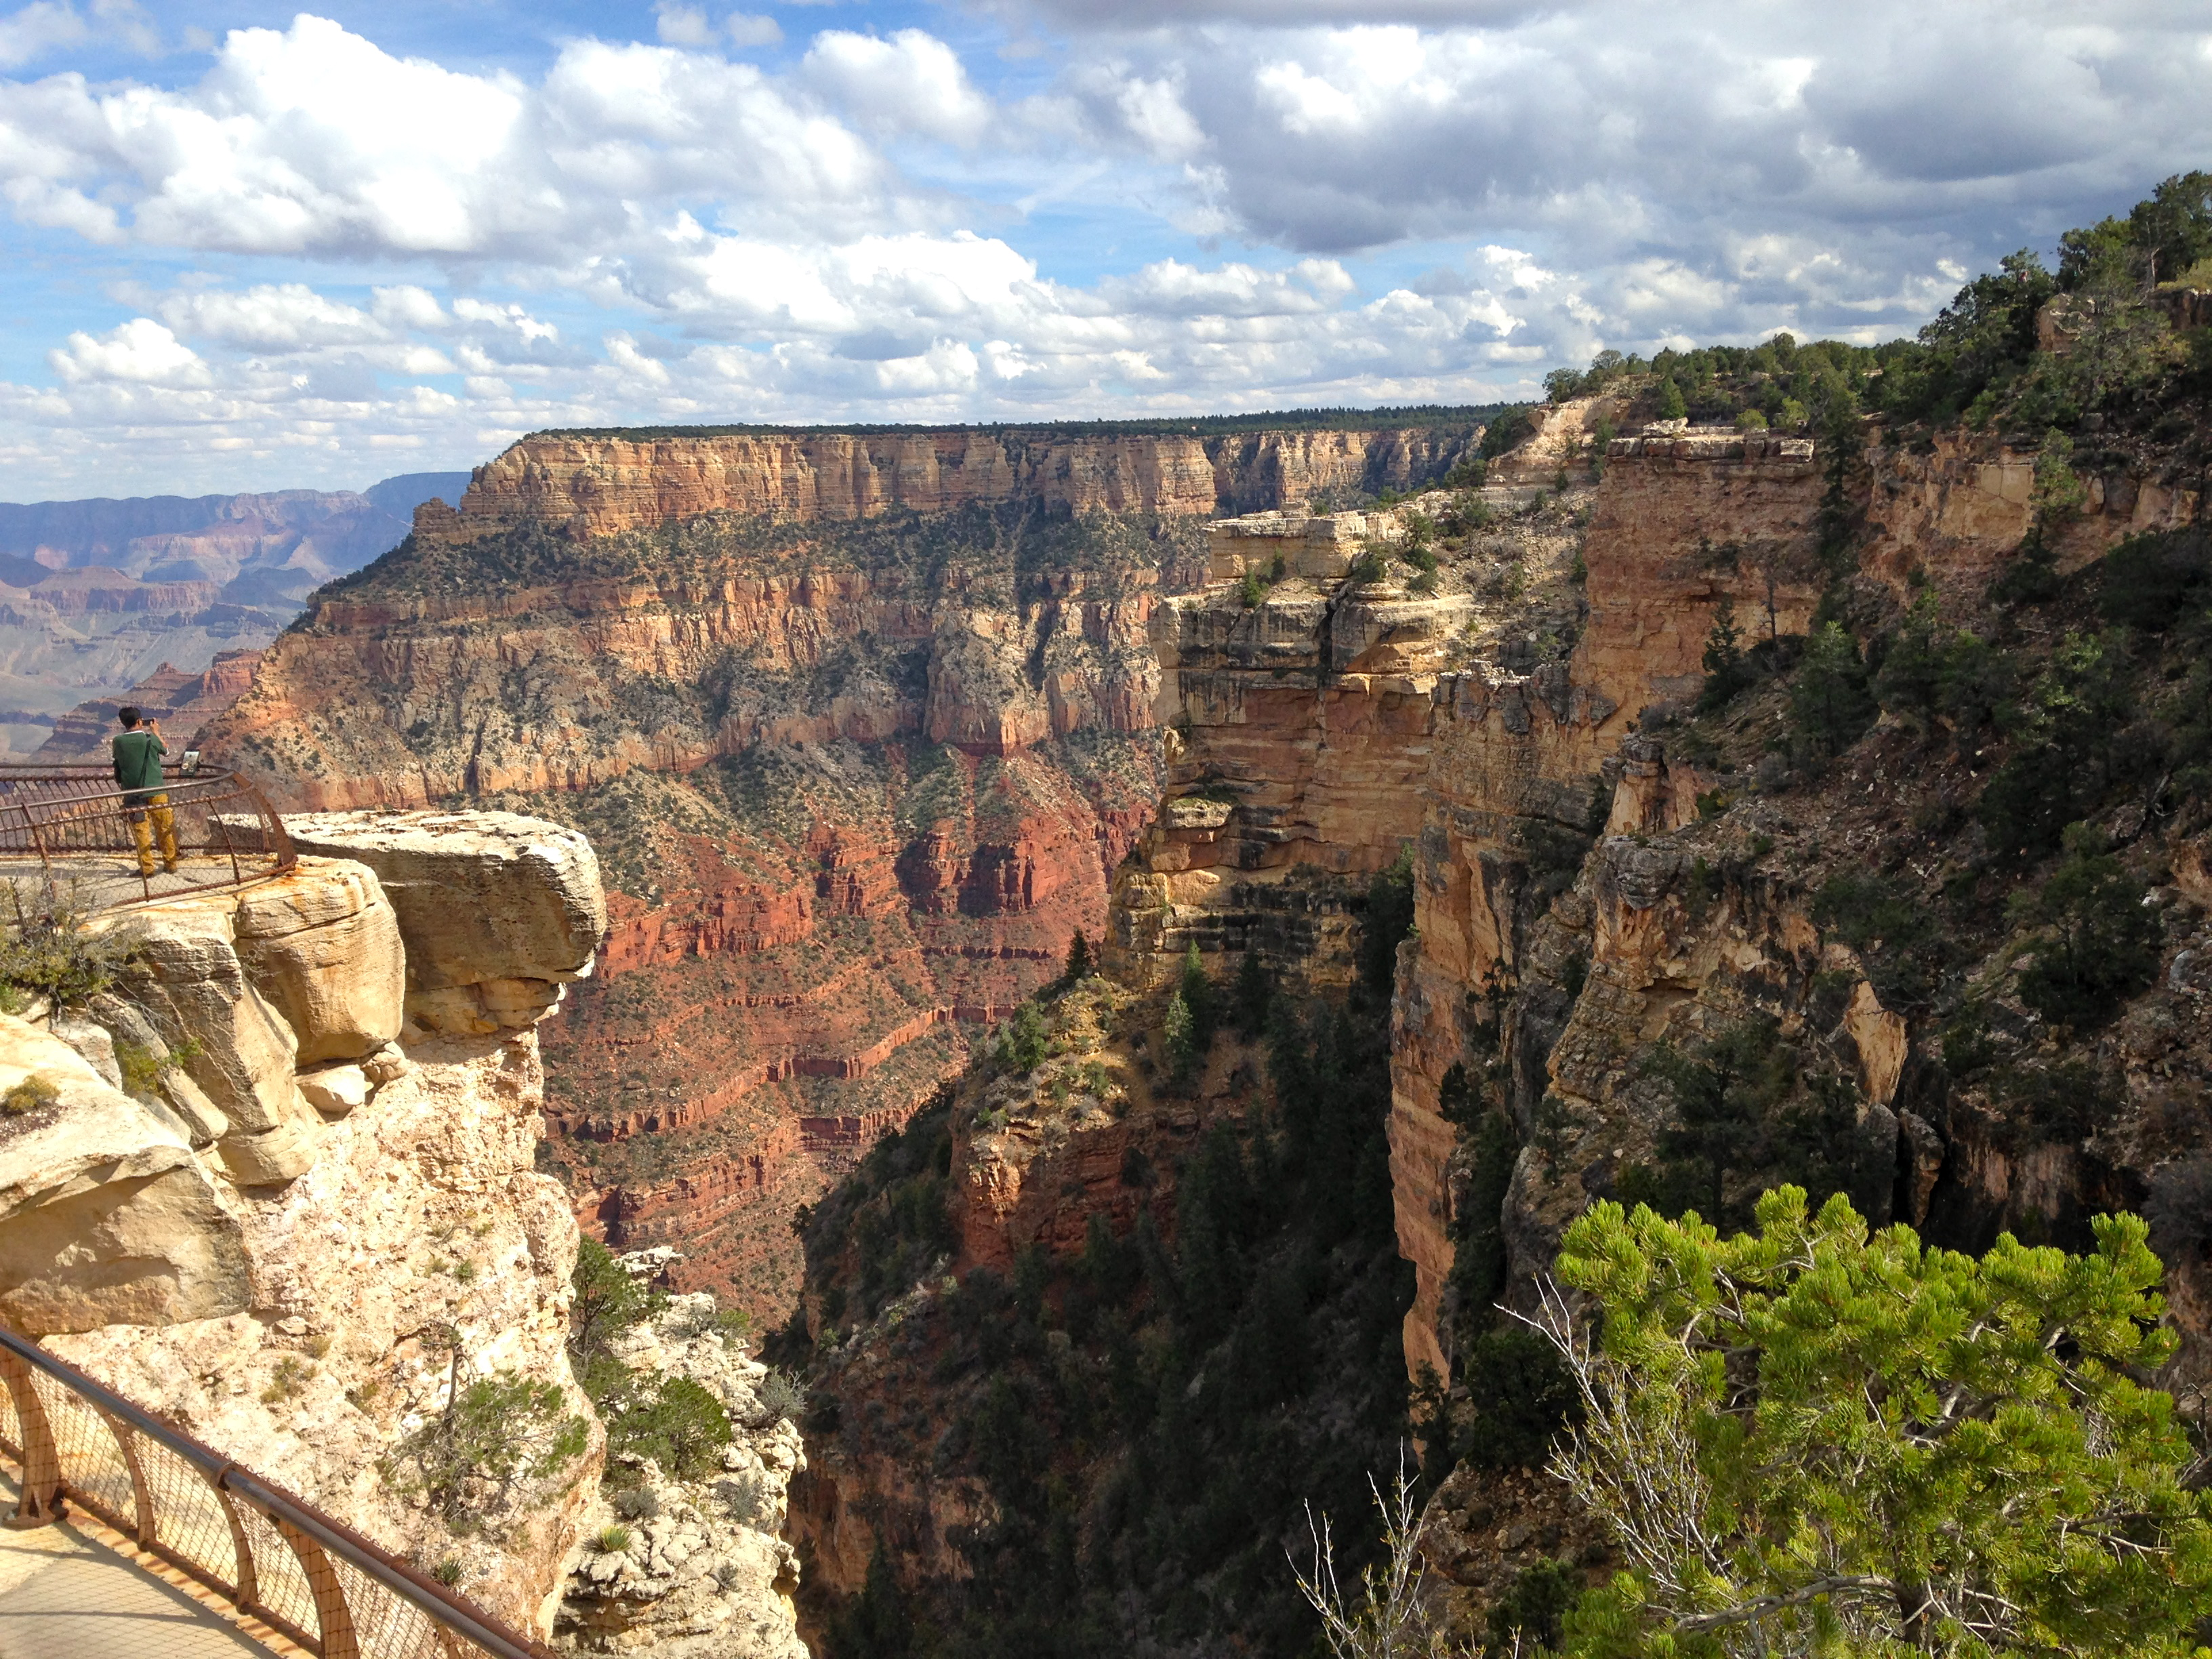 Visiting the Grandest of all Canyons!